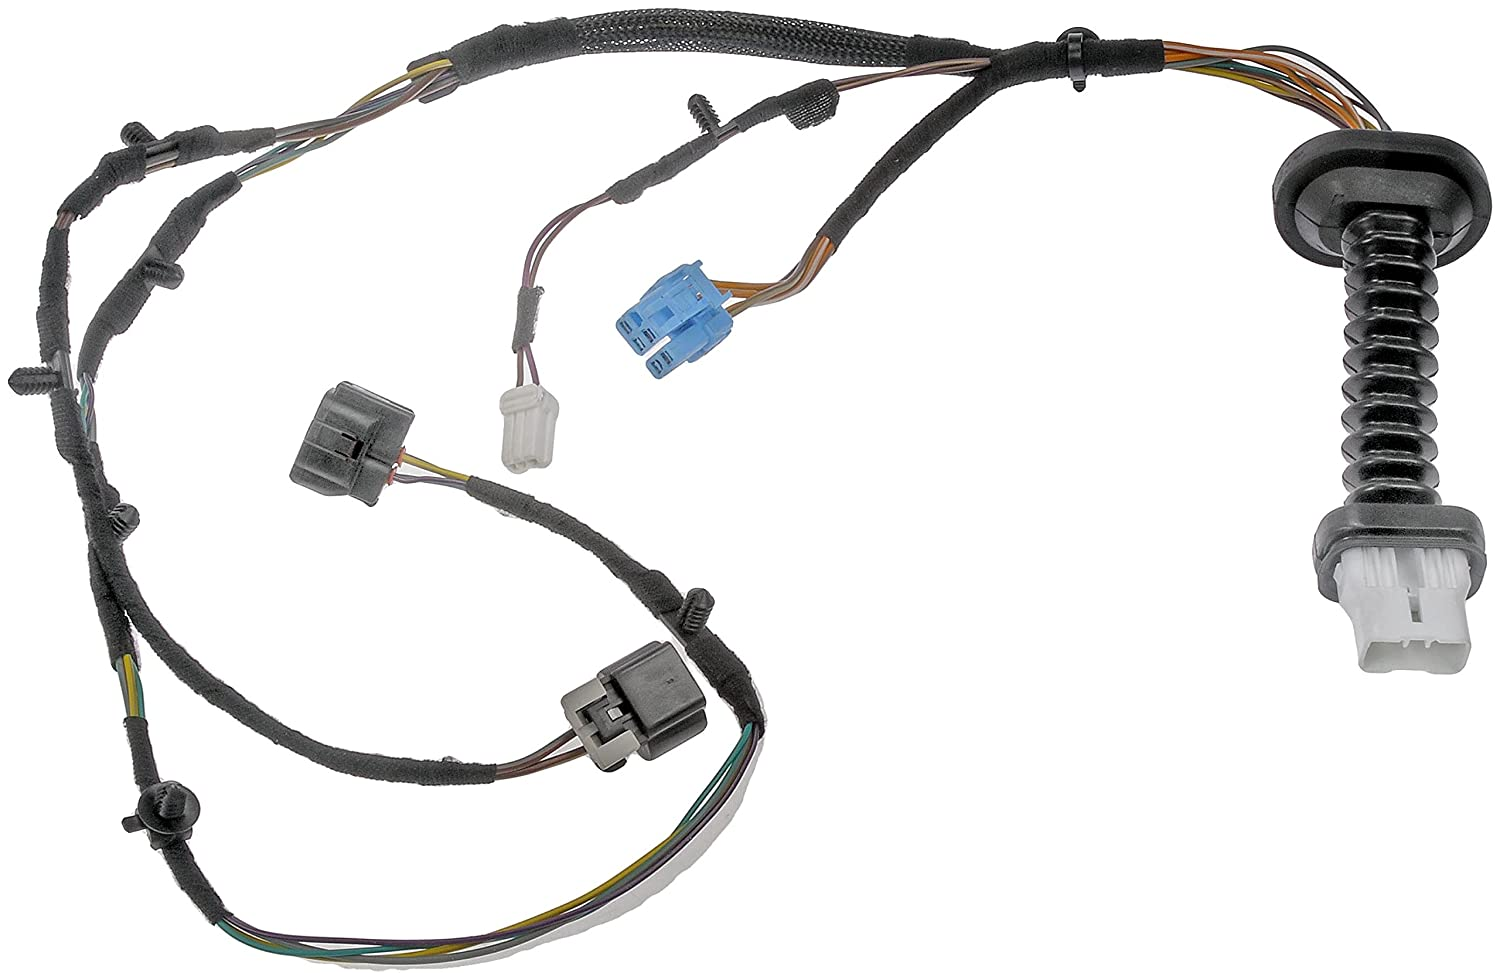 81c1LCEp7lL._SL1500_ amazon com dorman 645 506 door harness with connectors automotive Dodge Transmission Wiring Harness at alyssarenee.co